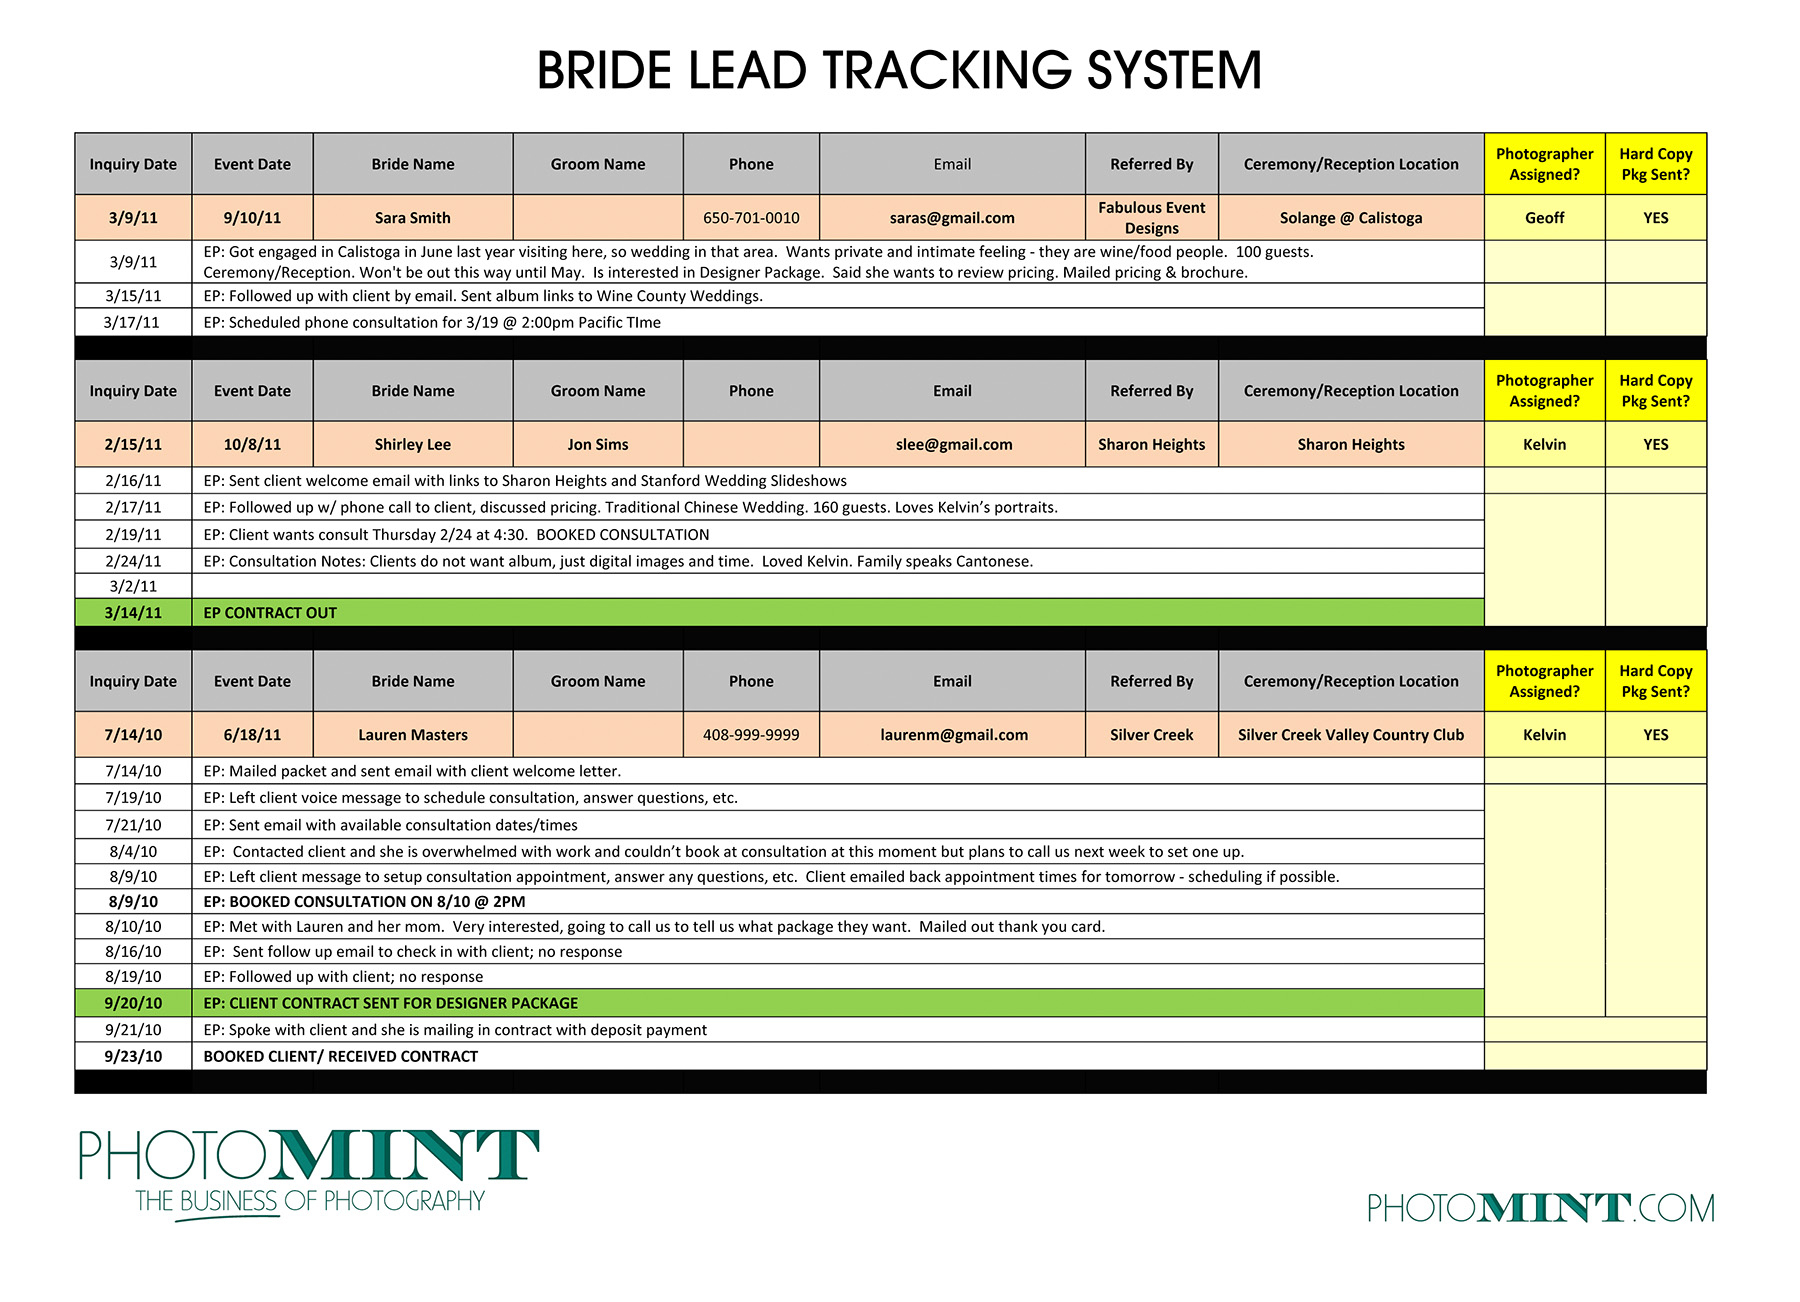 How To Track Clients With A Spreadsheet With Sales Call Tracking Spreadsheet Template Sheet Excel